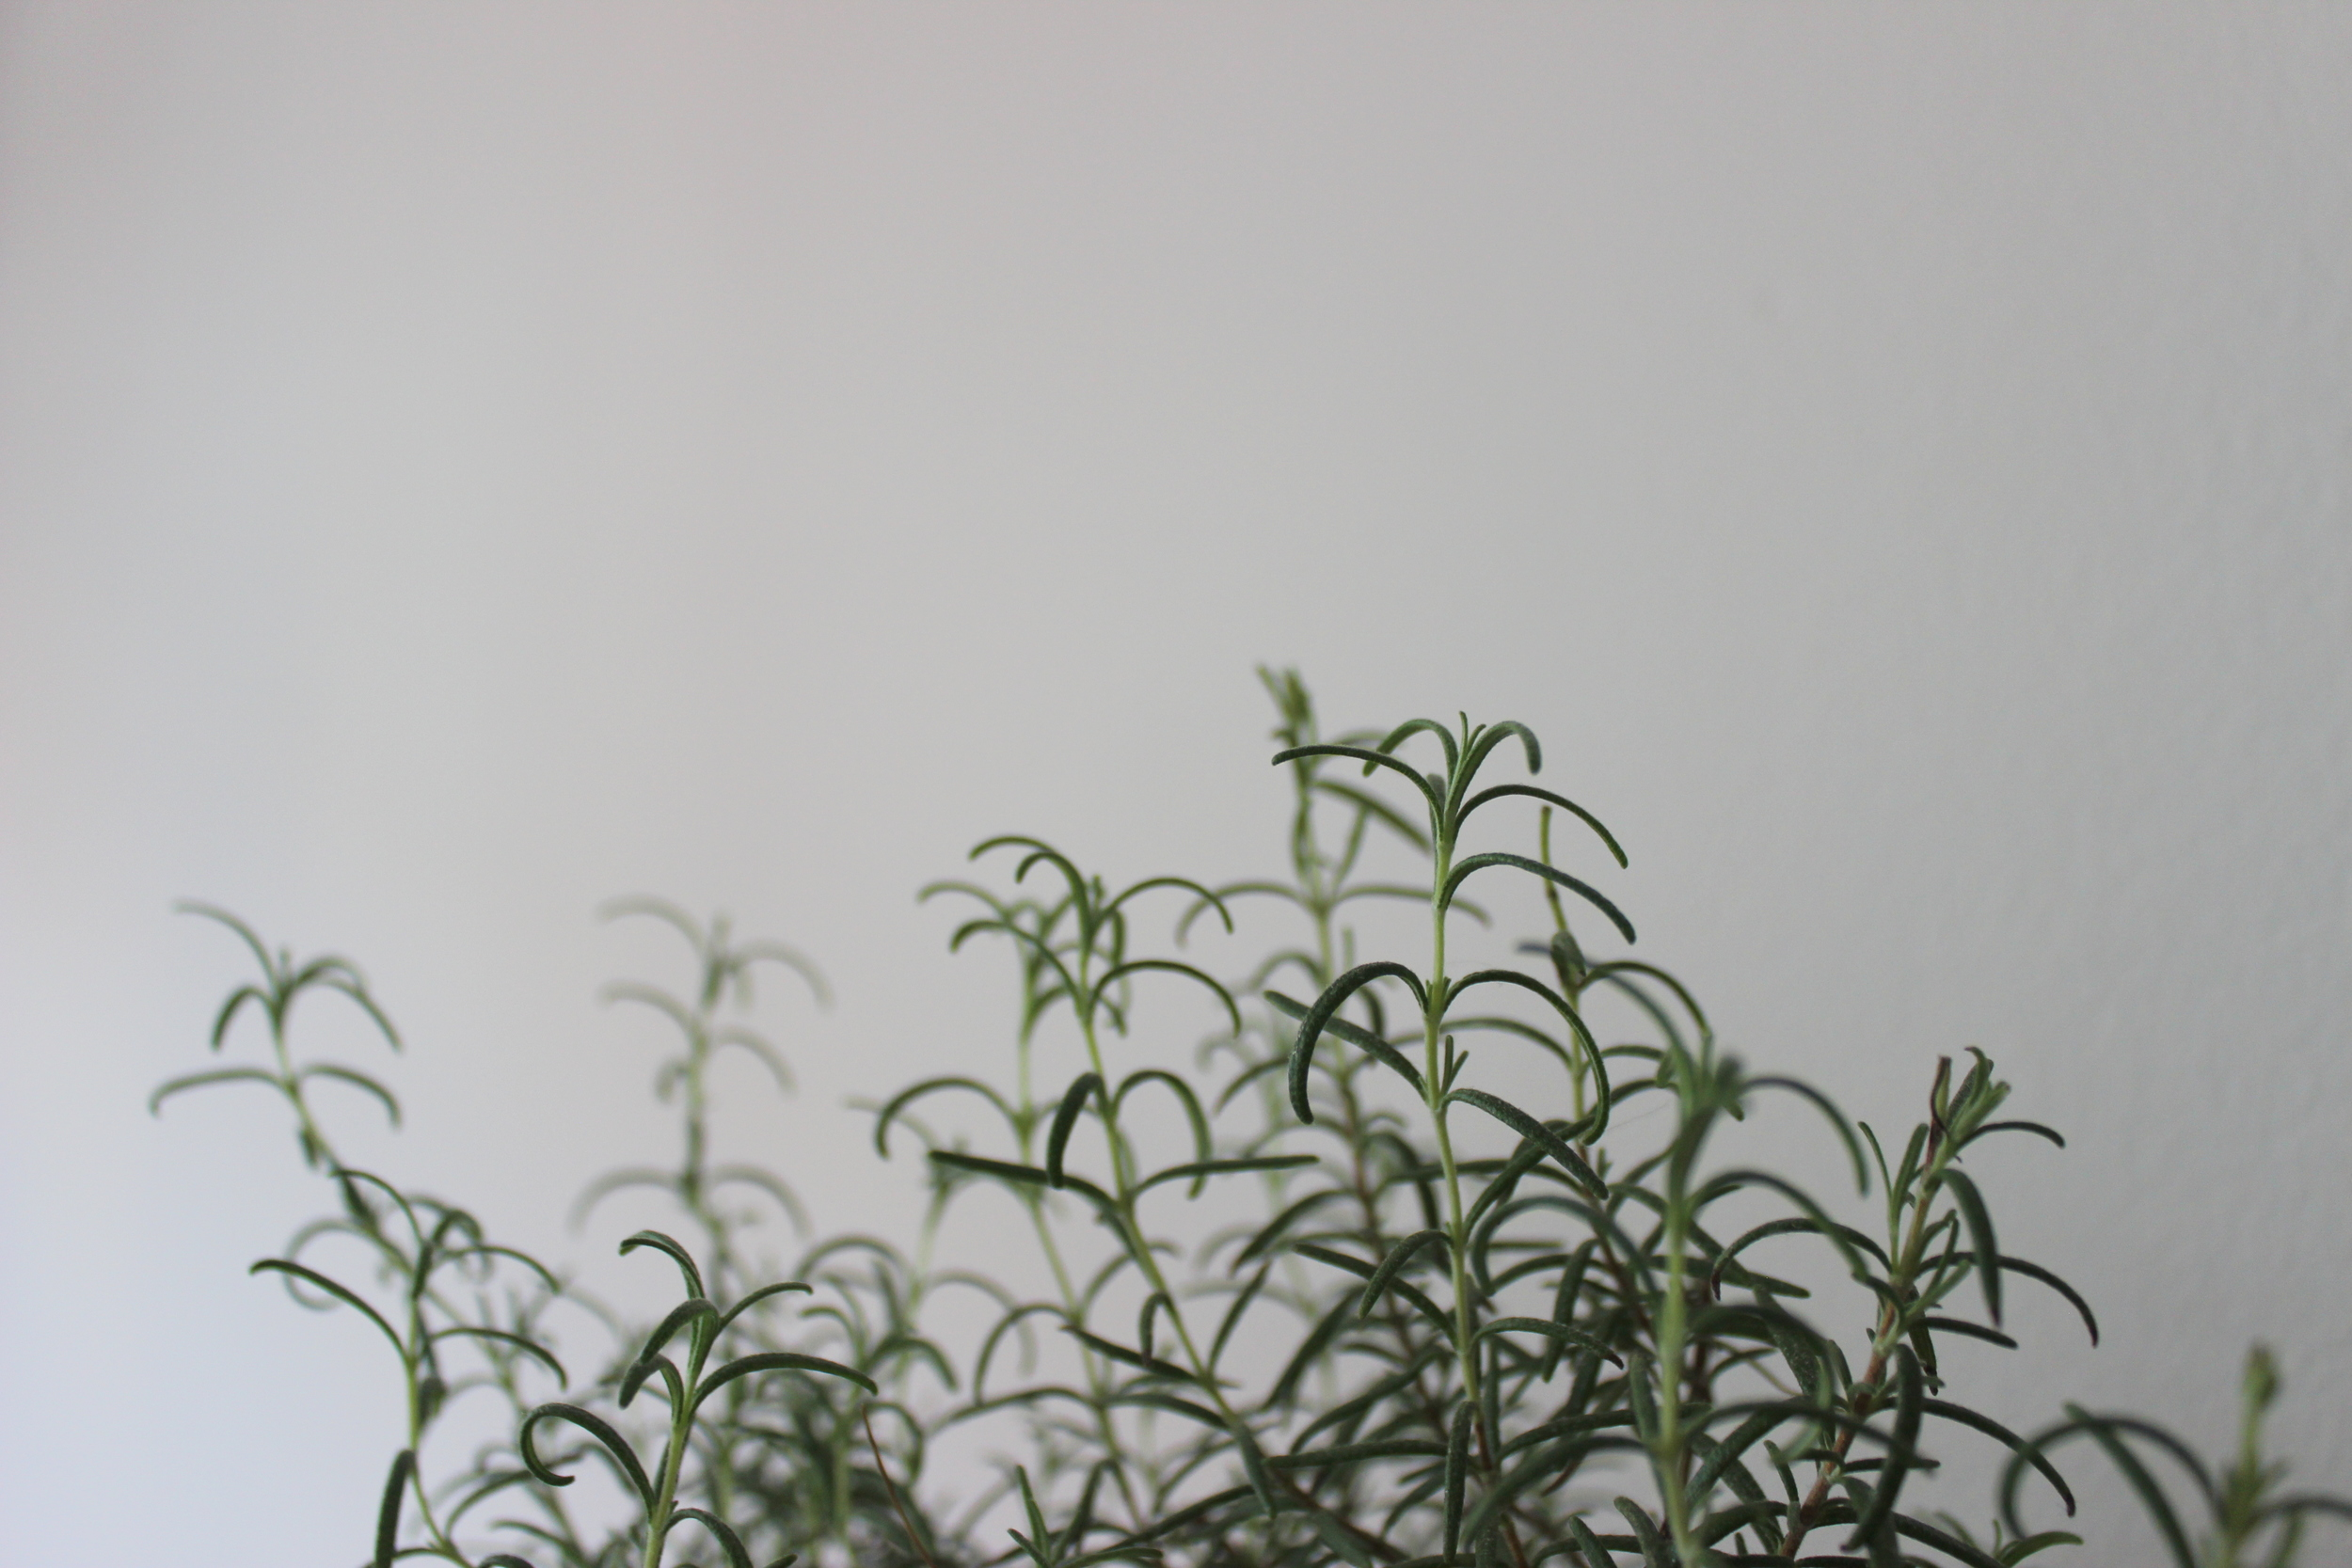 How to grow and care for a rosemary plant indoors and in a small city apartment | Litterless